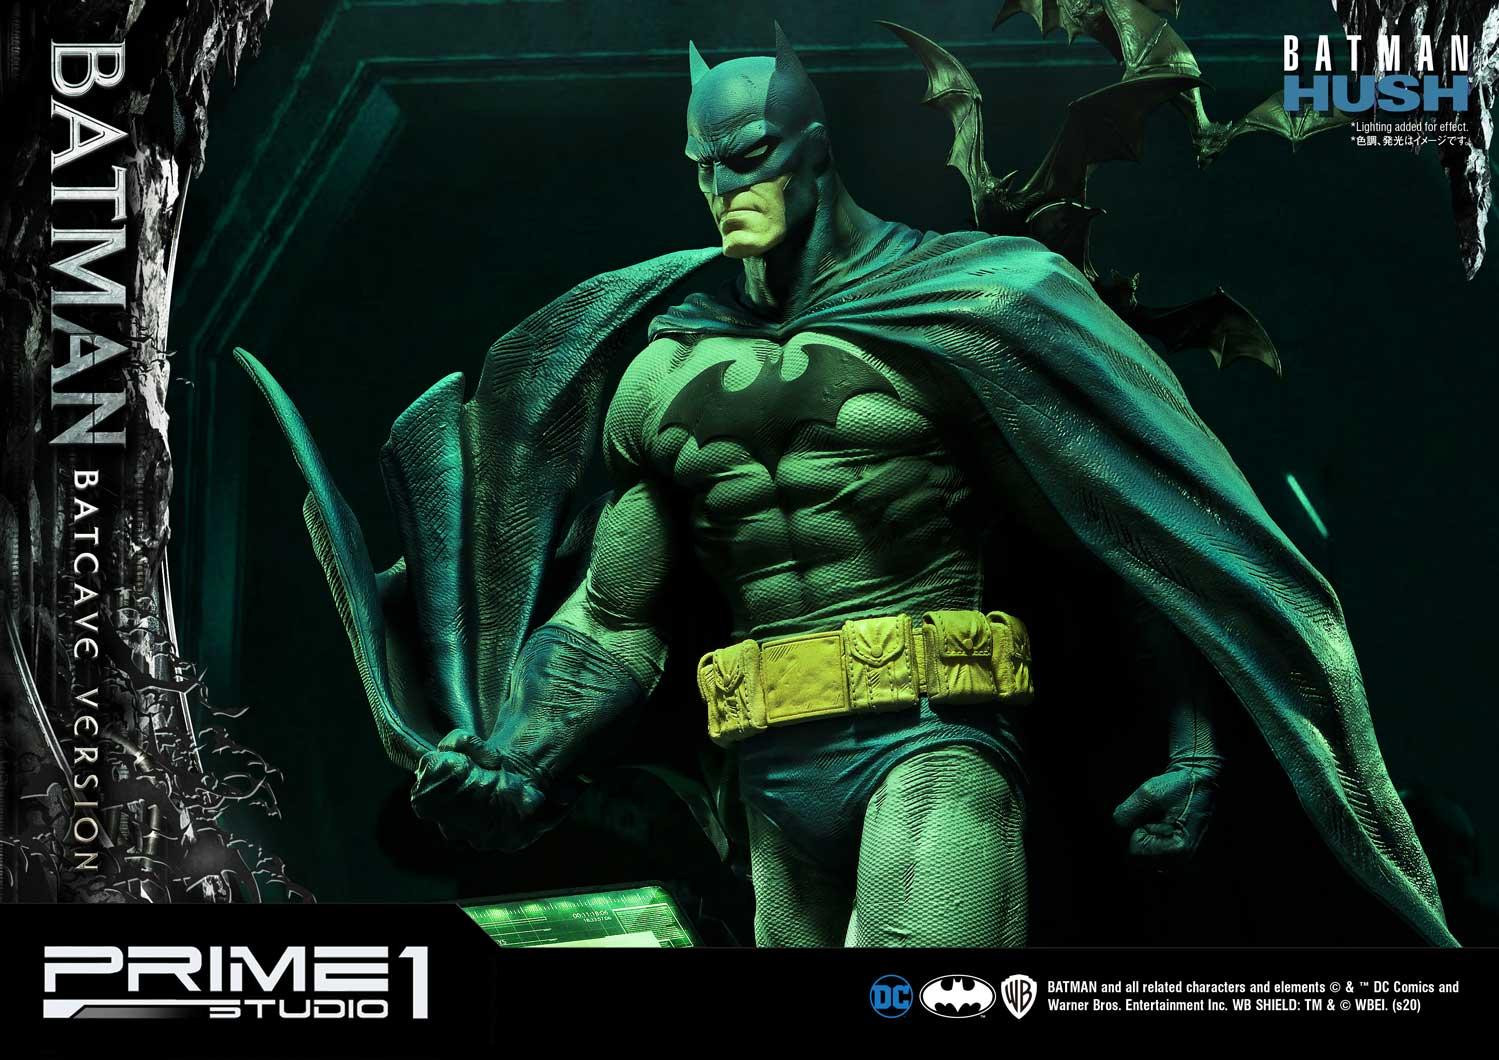 Prime-1-Batman-Batcave-Version-036